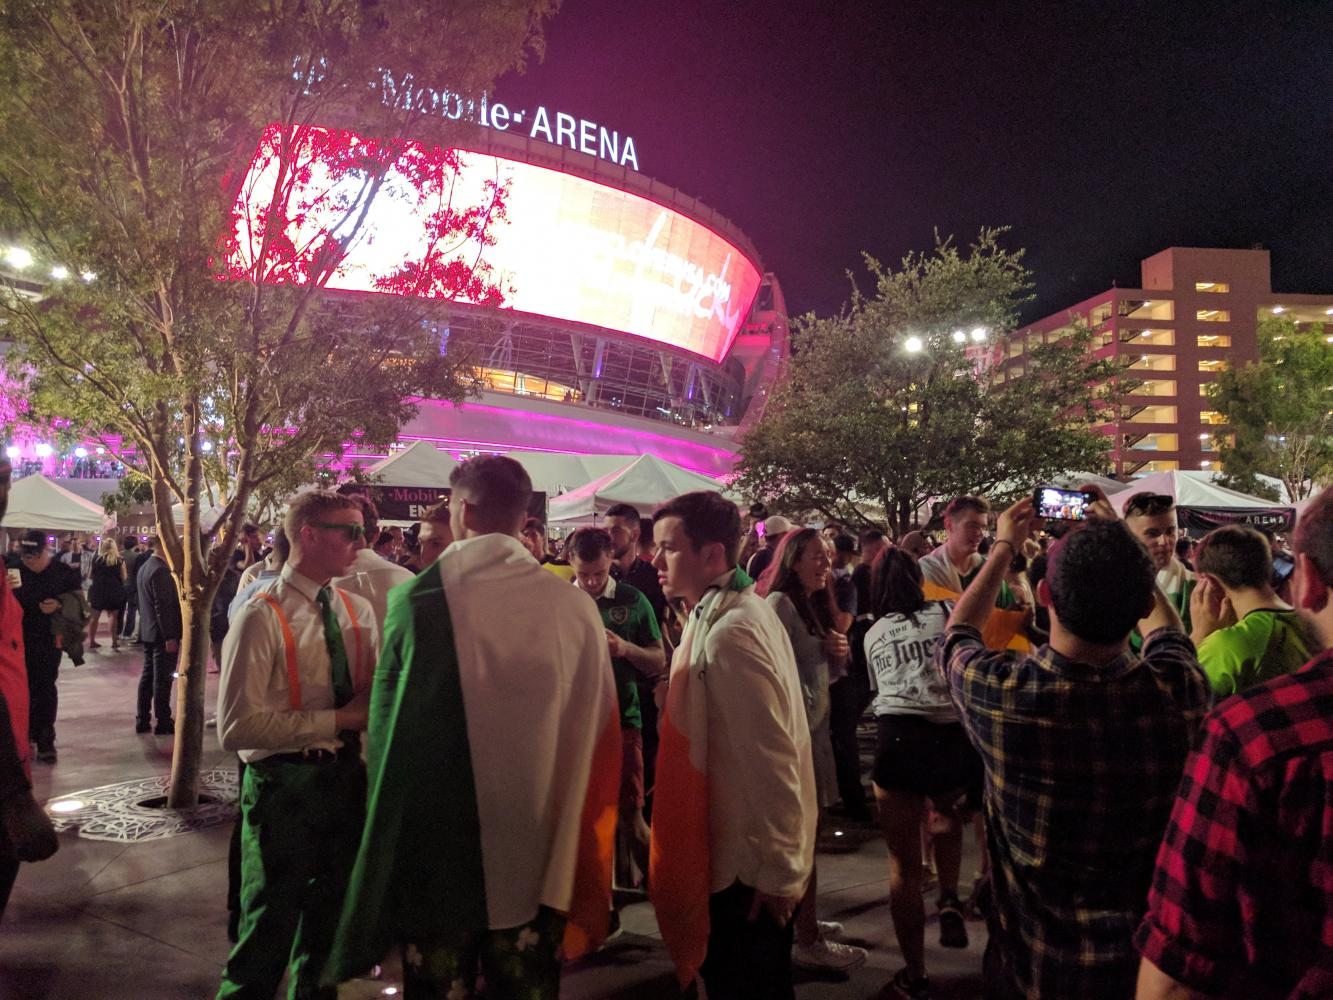 McGregor's Irish fans traveled 5,000 miles to support him in his first professional boxing match, Las Vegas, Aug. 26.